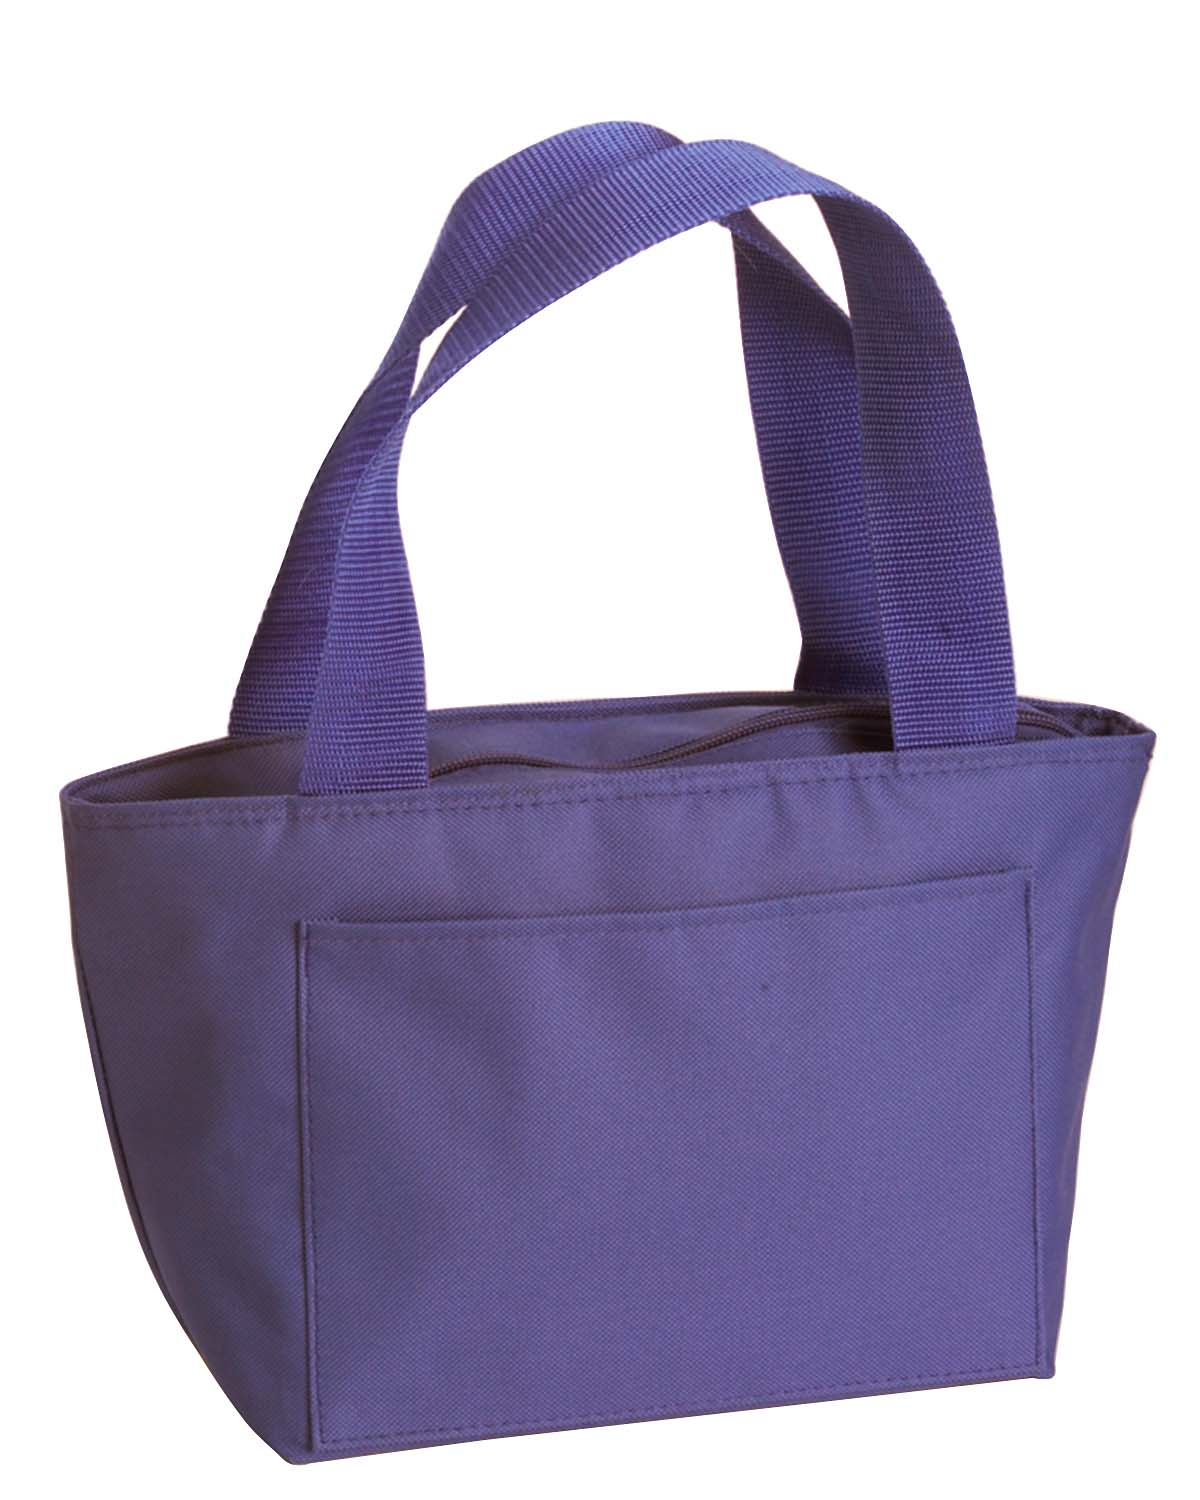 Liberty Bags Recycled Cooler Tote-8808